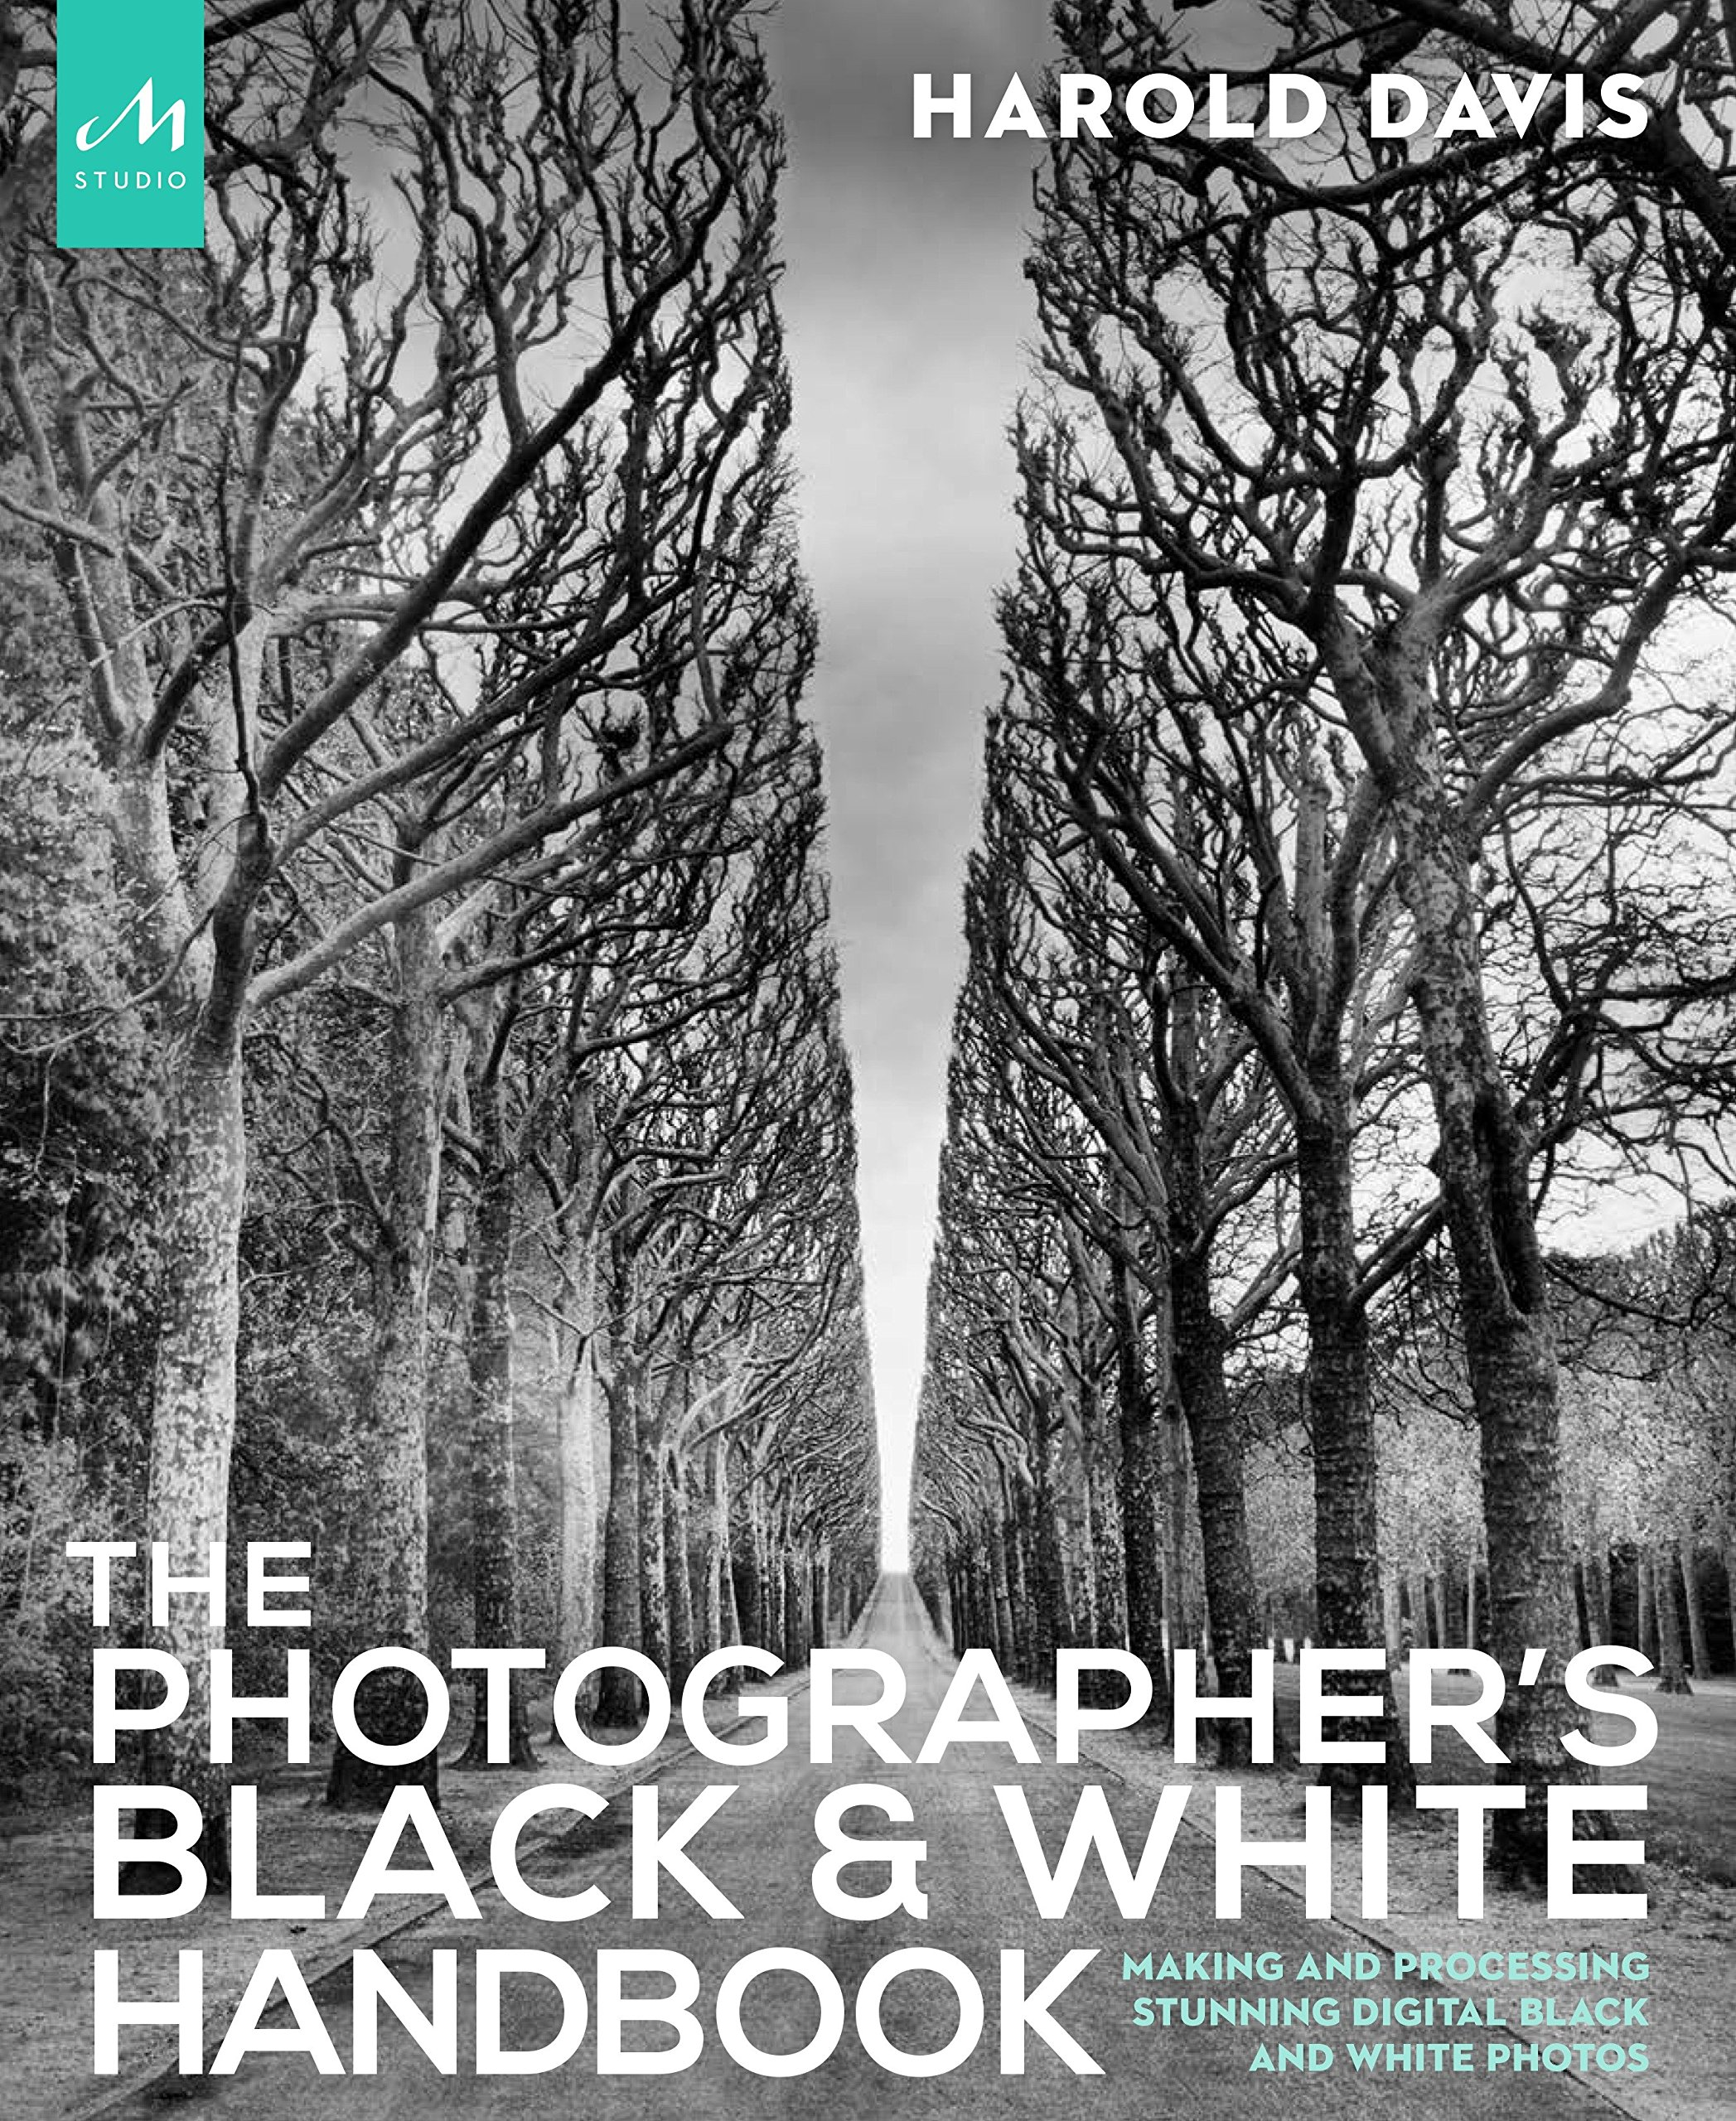 The photographers black and white handbook making and processing stunning digital black and white photos harold davis 9781580934787 amazon com books